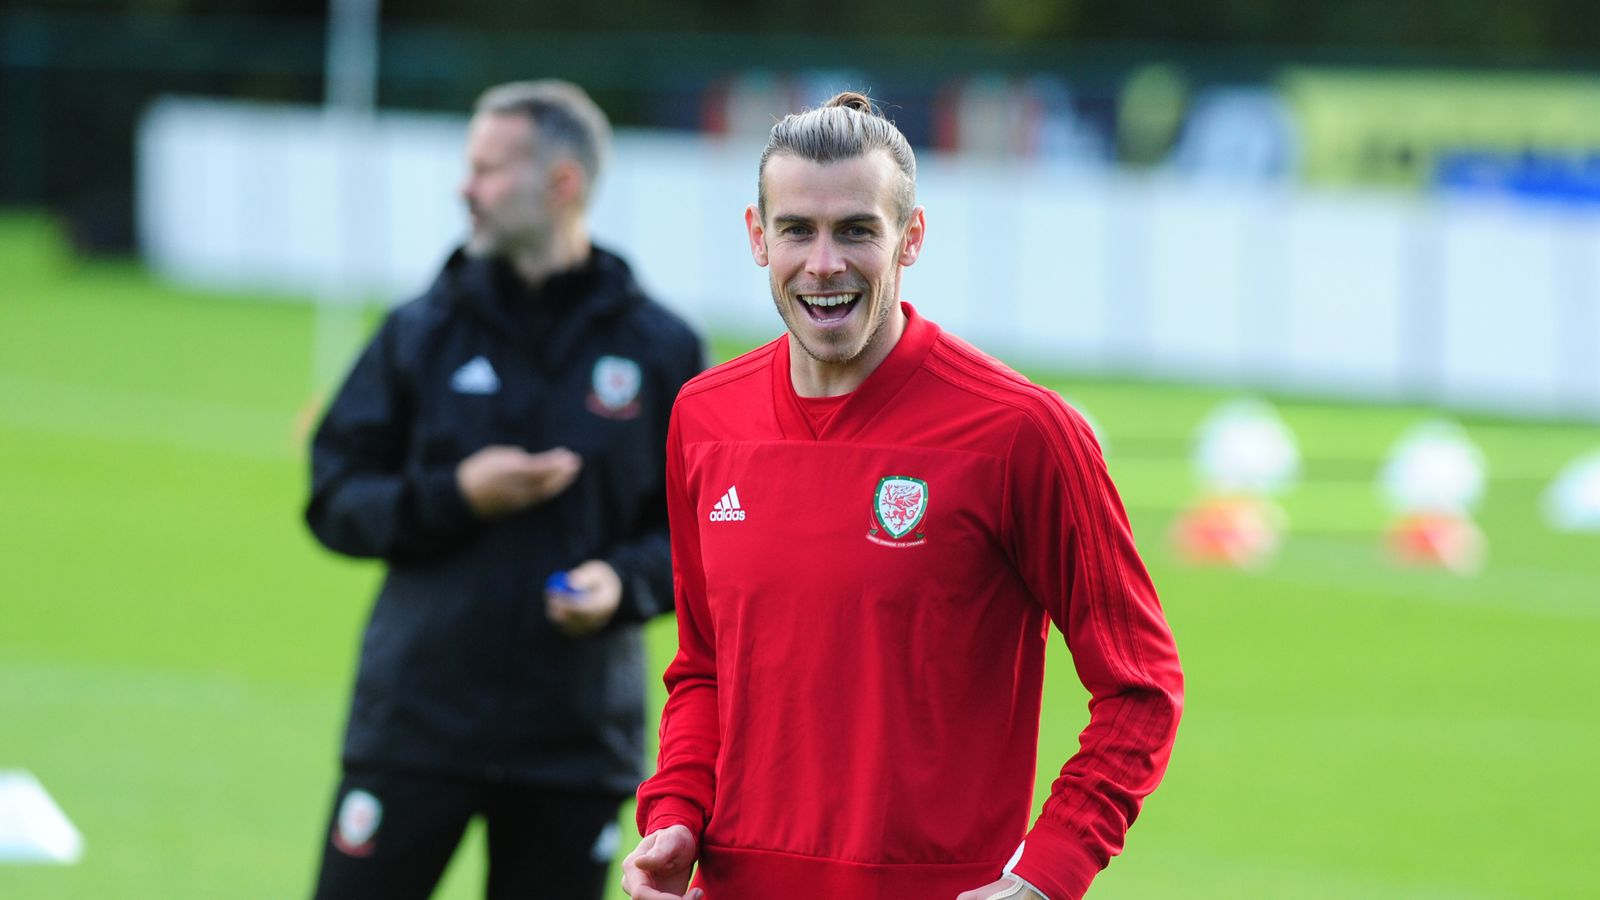 Wales vs Croatia: Prediction & Match Preview, Lineups, Team News